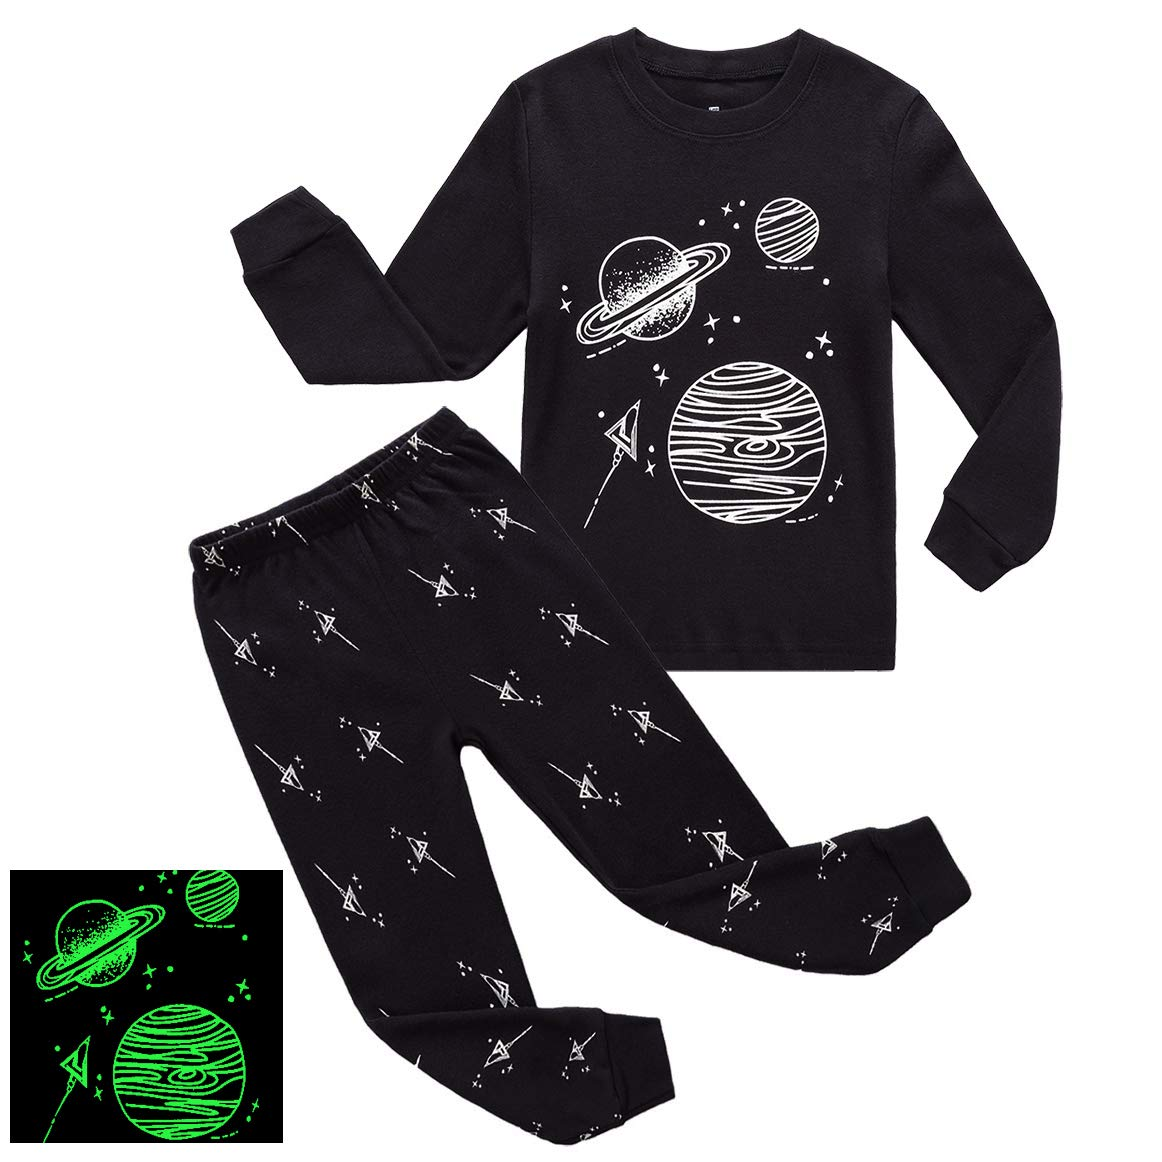 RKOIAN Little Boys Girls' Pajamas Sets Glow in The Dark Toddler Pjs Cotton Kids Sleepwears